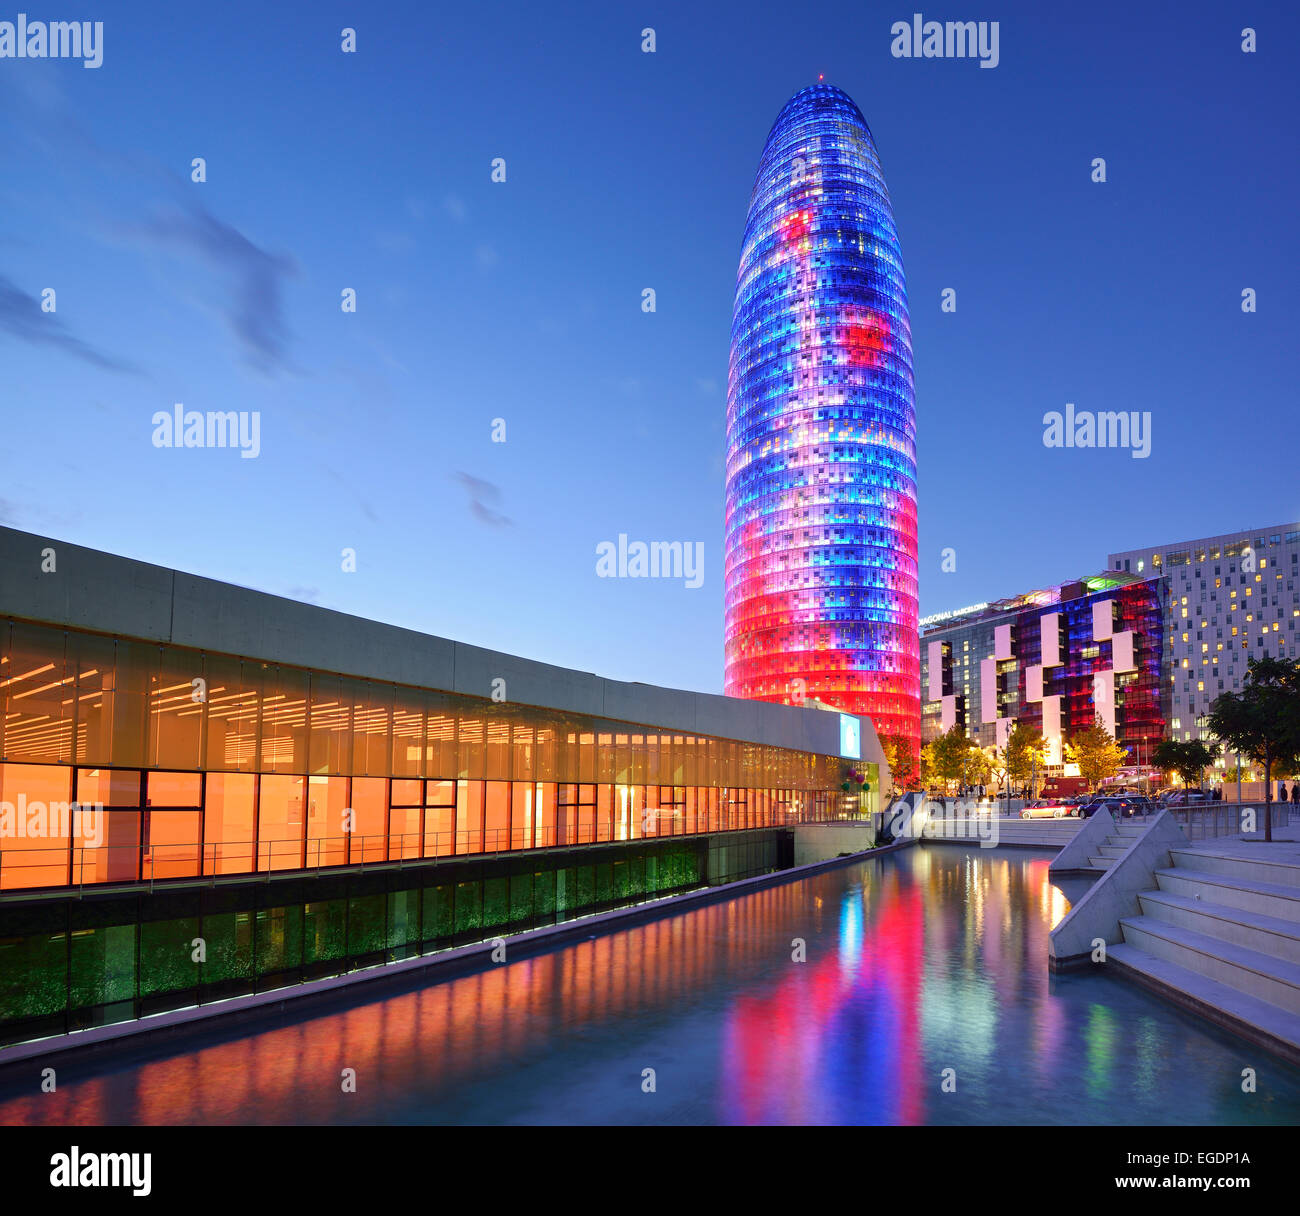 Disseny Hub Barcelona and skyscraper Torre Agbar, illuminated, architect Jean Nouvel, Barcelona, Catalonia, Spain - Stock Image